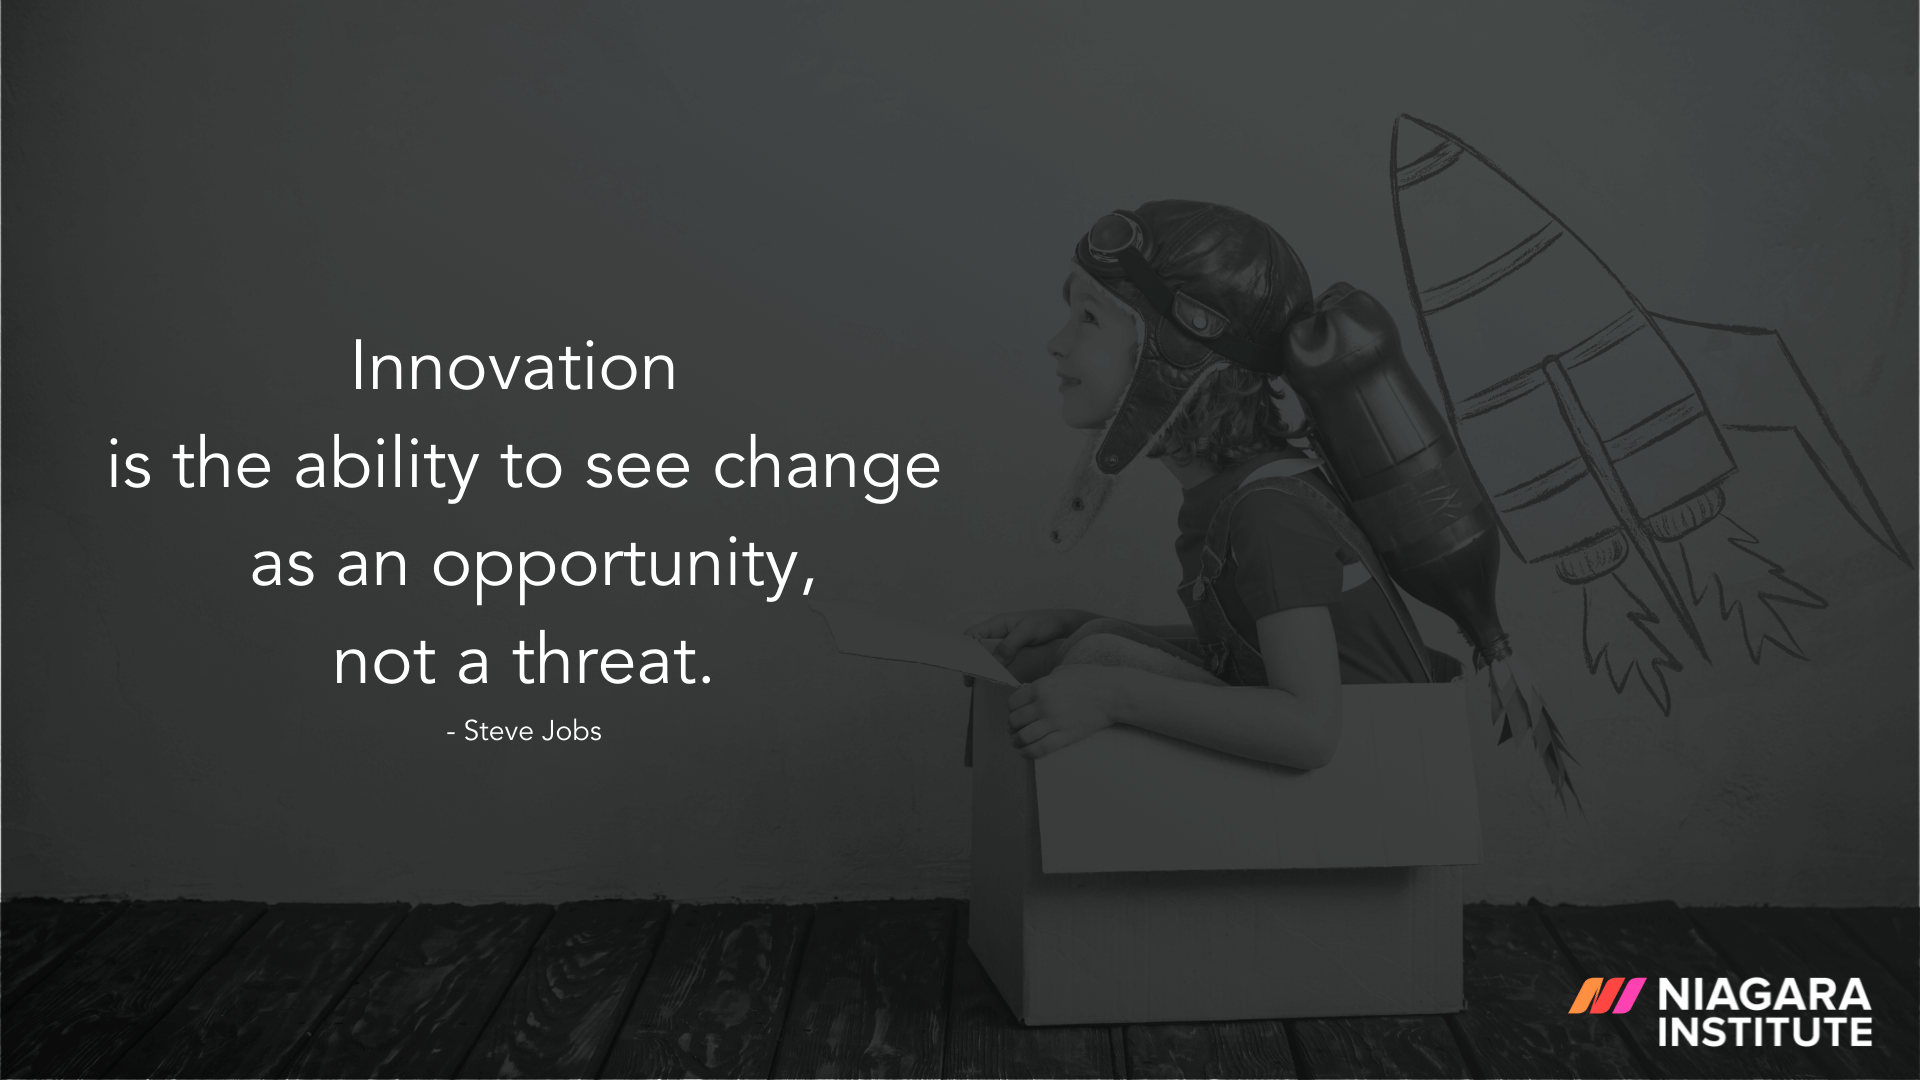 Innovation is the ability to see change as an opportunity, not a threat. - Steve Jobs